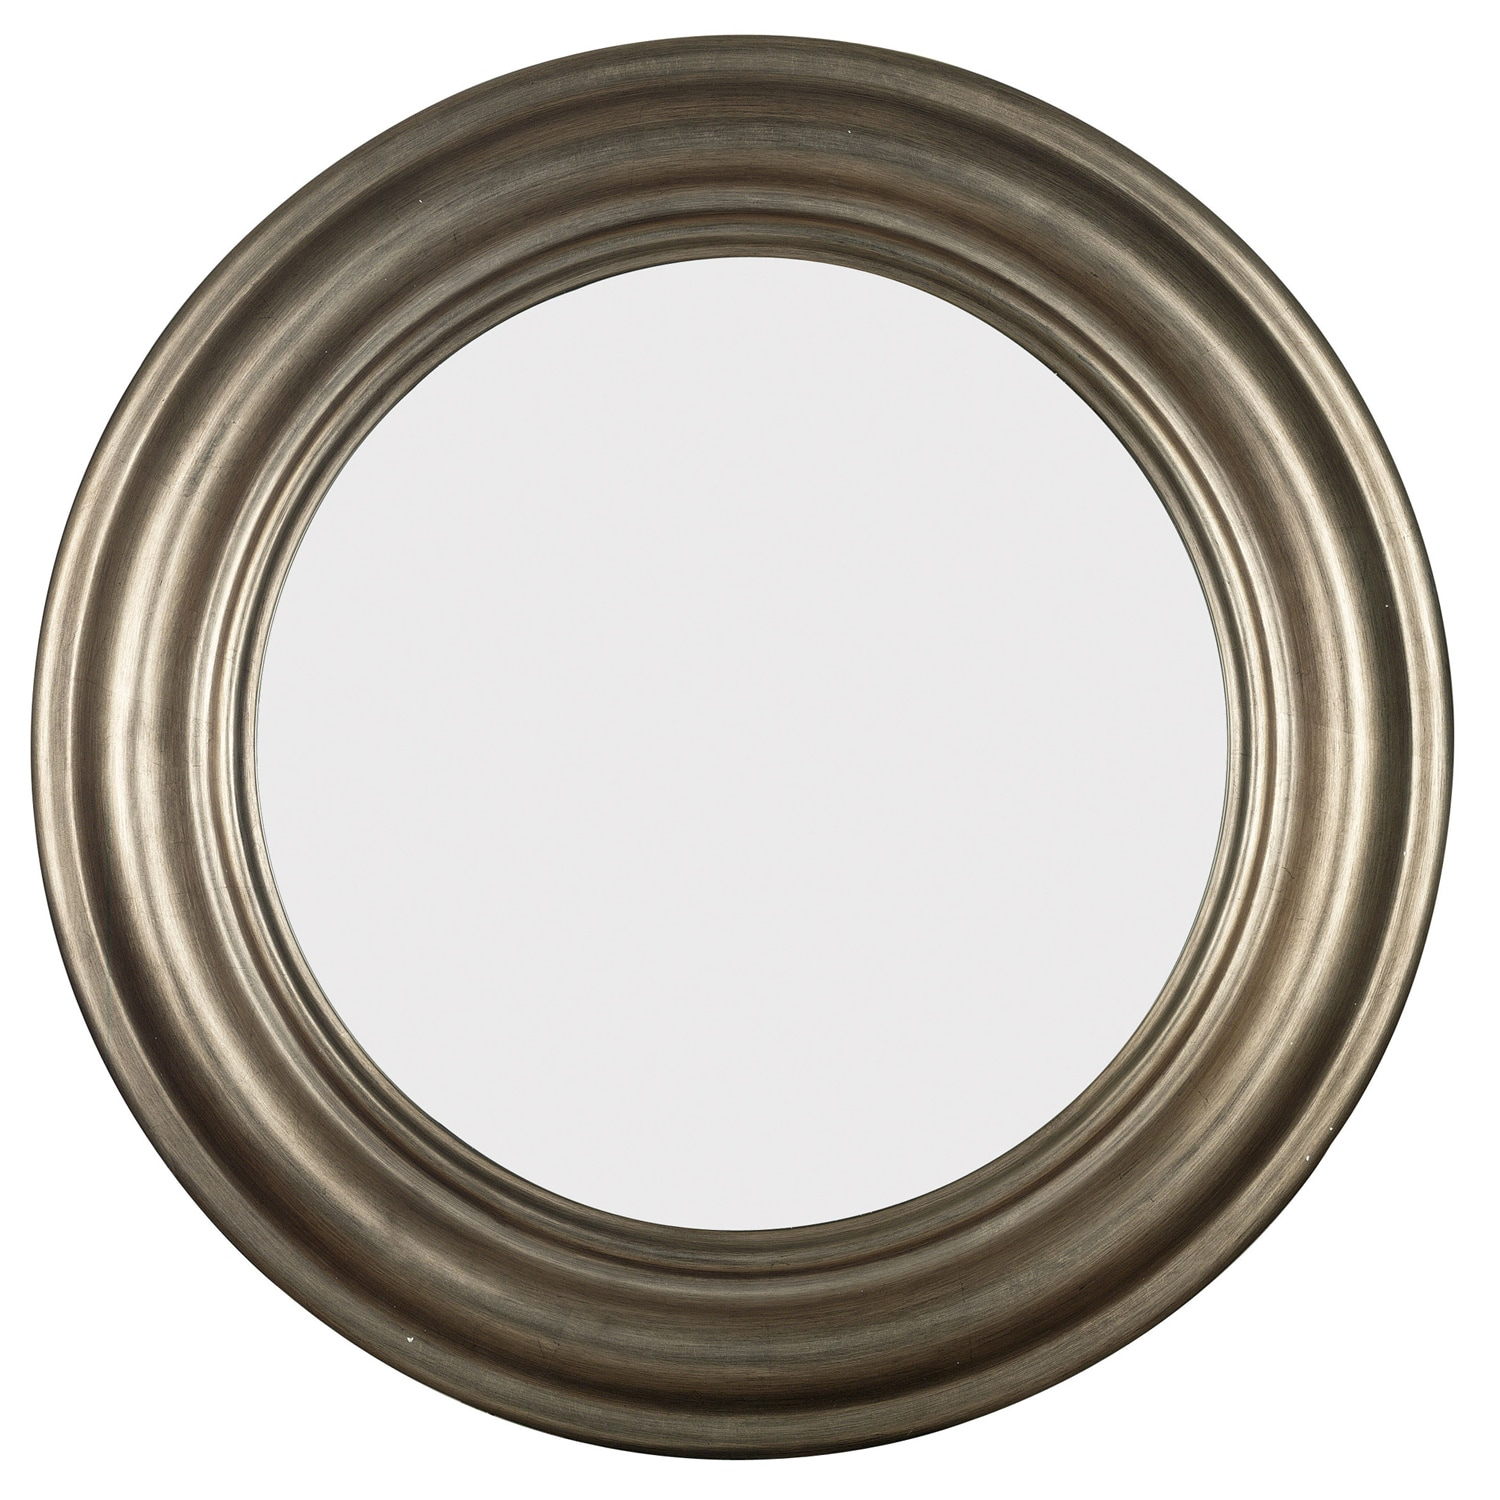 Pasco Round Antique Silver Wall Mirror